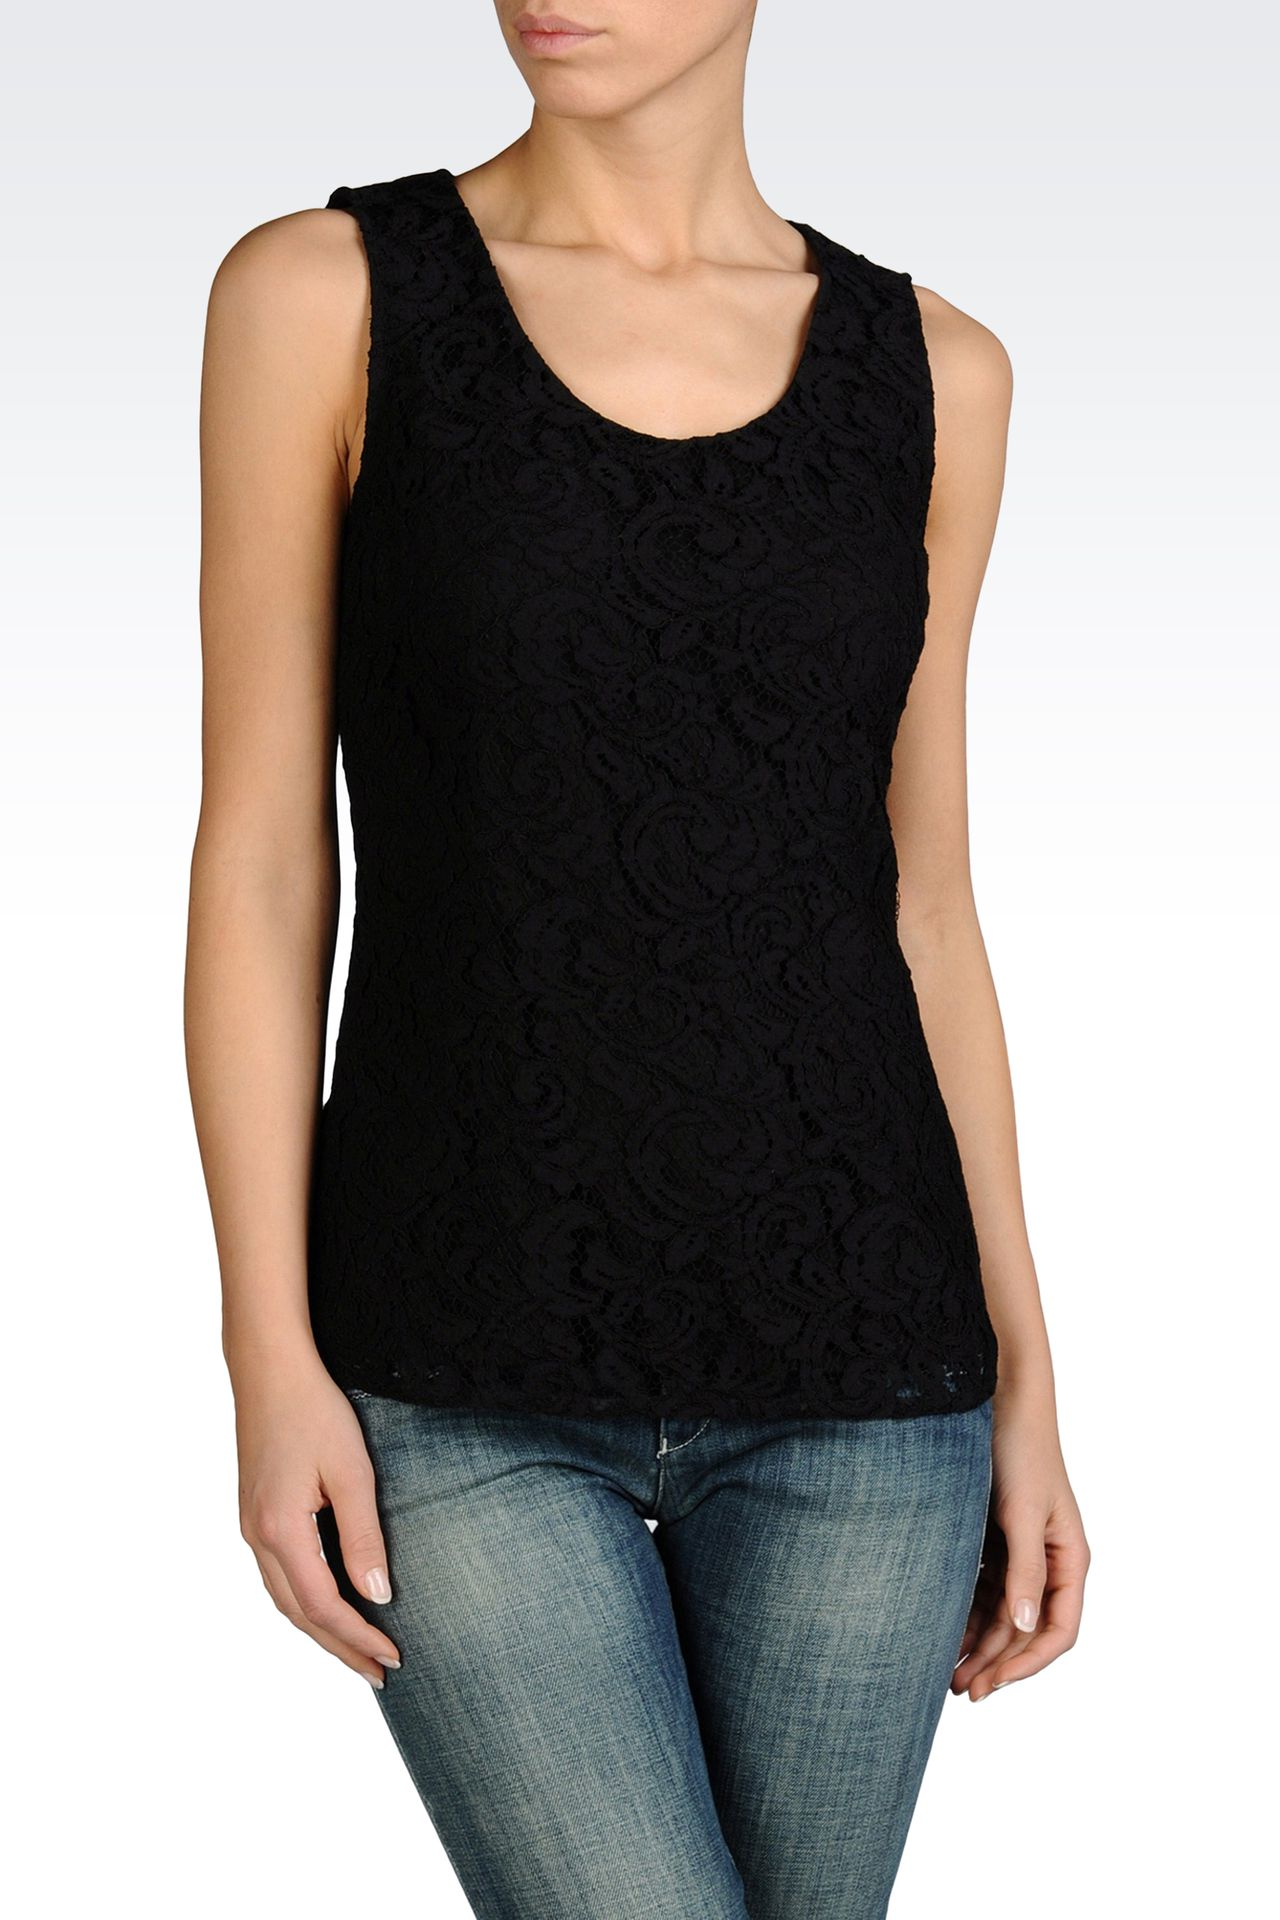 SLEEVELESS BLOUSE IN COTTON LACE: Sleeveless tops Women by Armani - 0